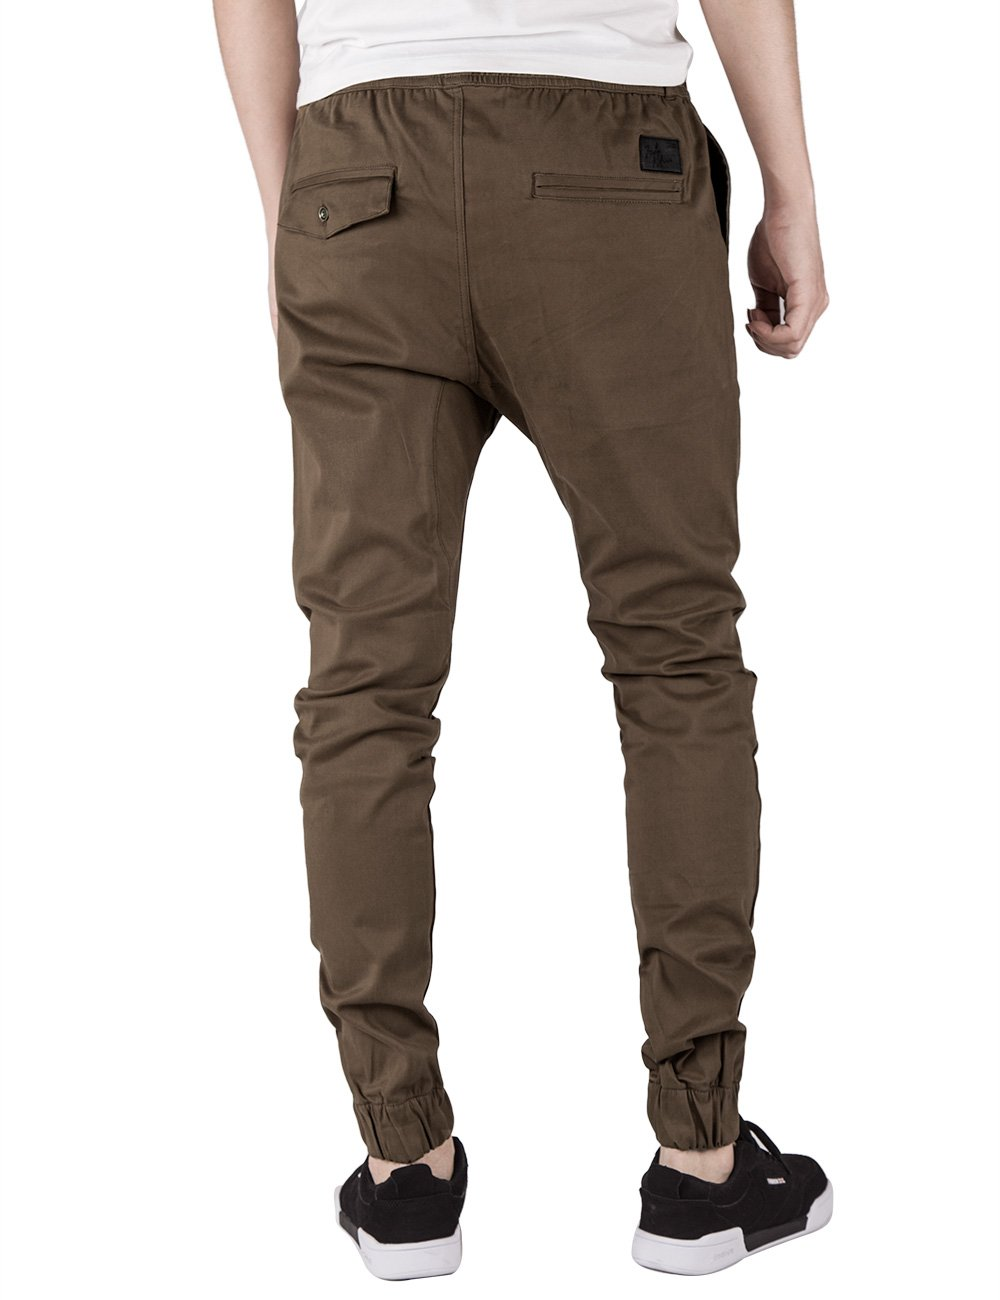 ITALY MORN Men's Chino Jogger Pants XL Coffee by ITALY MORN (Image #3)